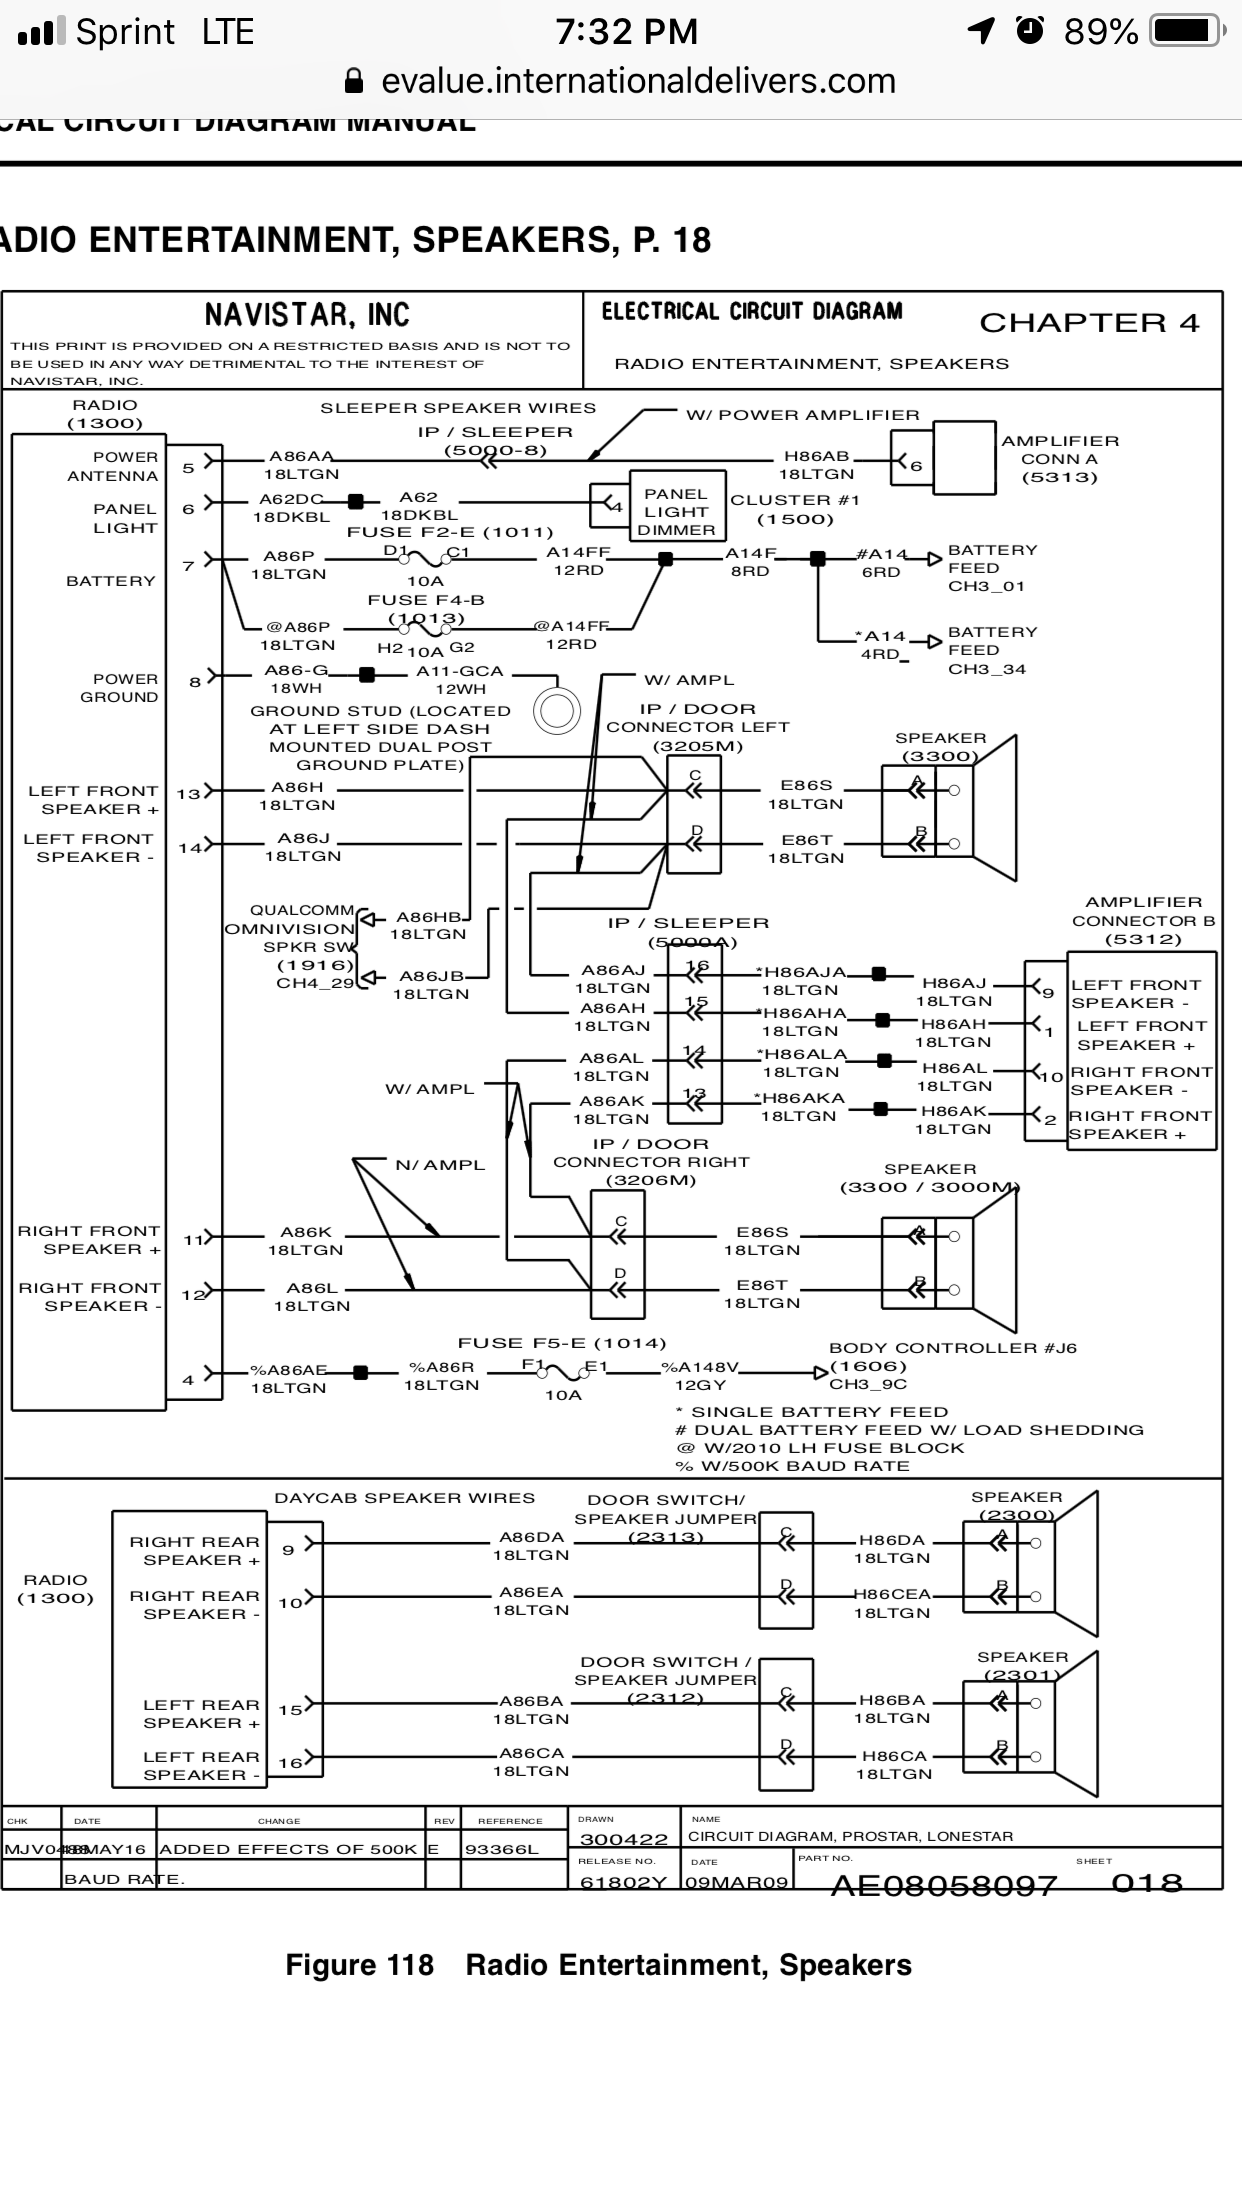 Diagram 2009 International Prostar Radio Wiring Diagram Full Version Hd Quality Wiring Diagram Diagramberesx Hotelbarancio It